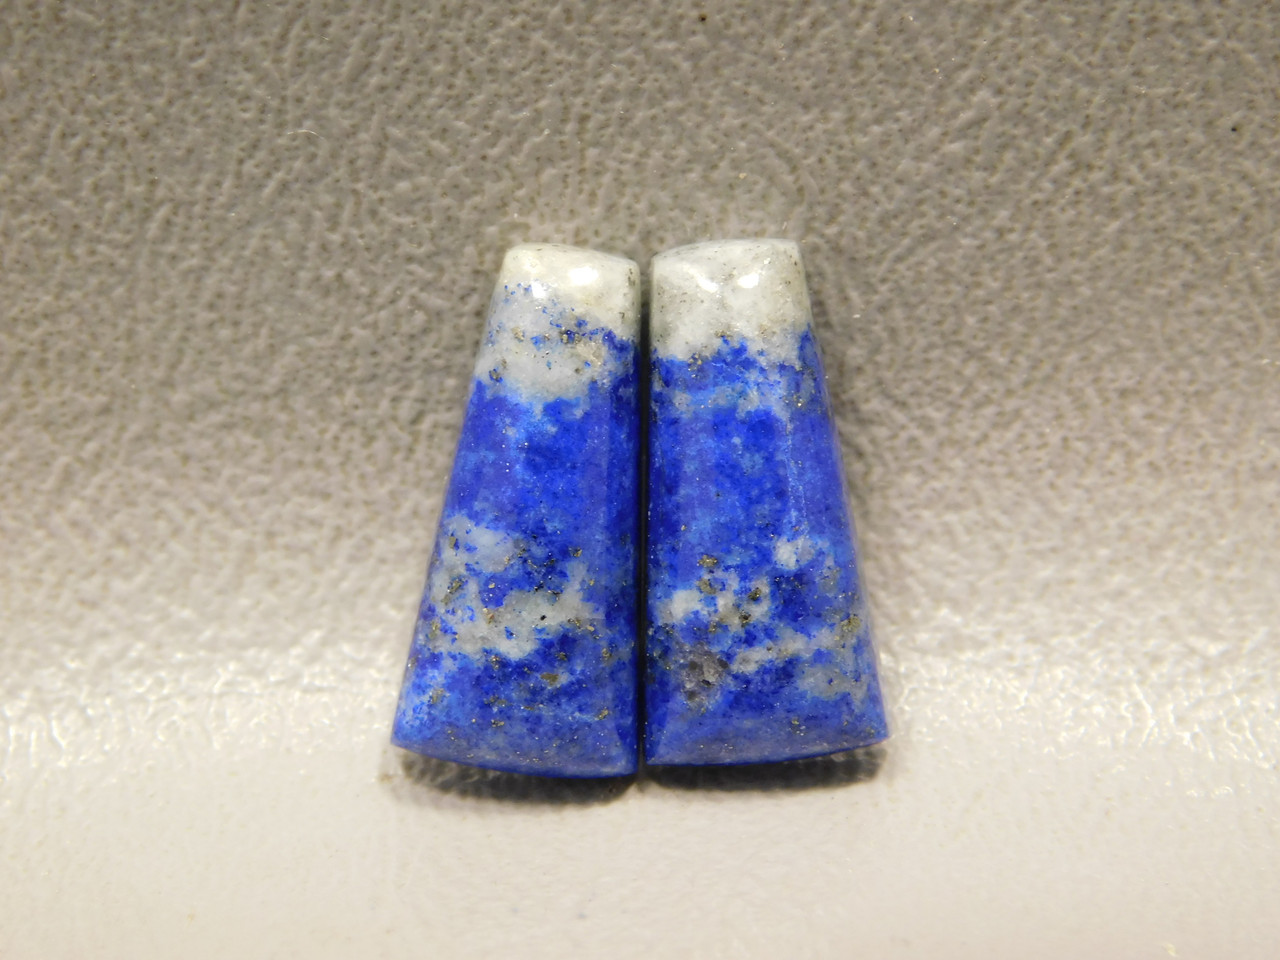 Blue Stone Lapis Lazuli Cabochons Matched Pairs for Earrings #22